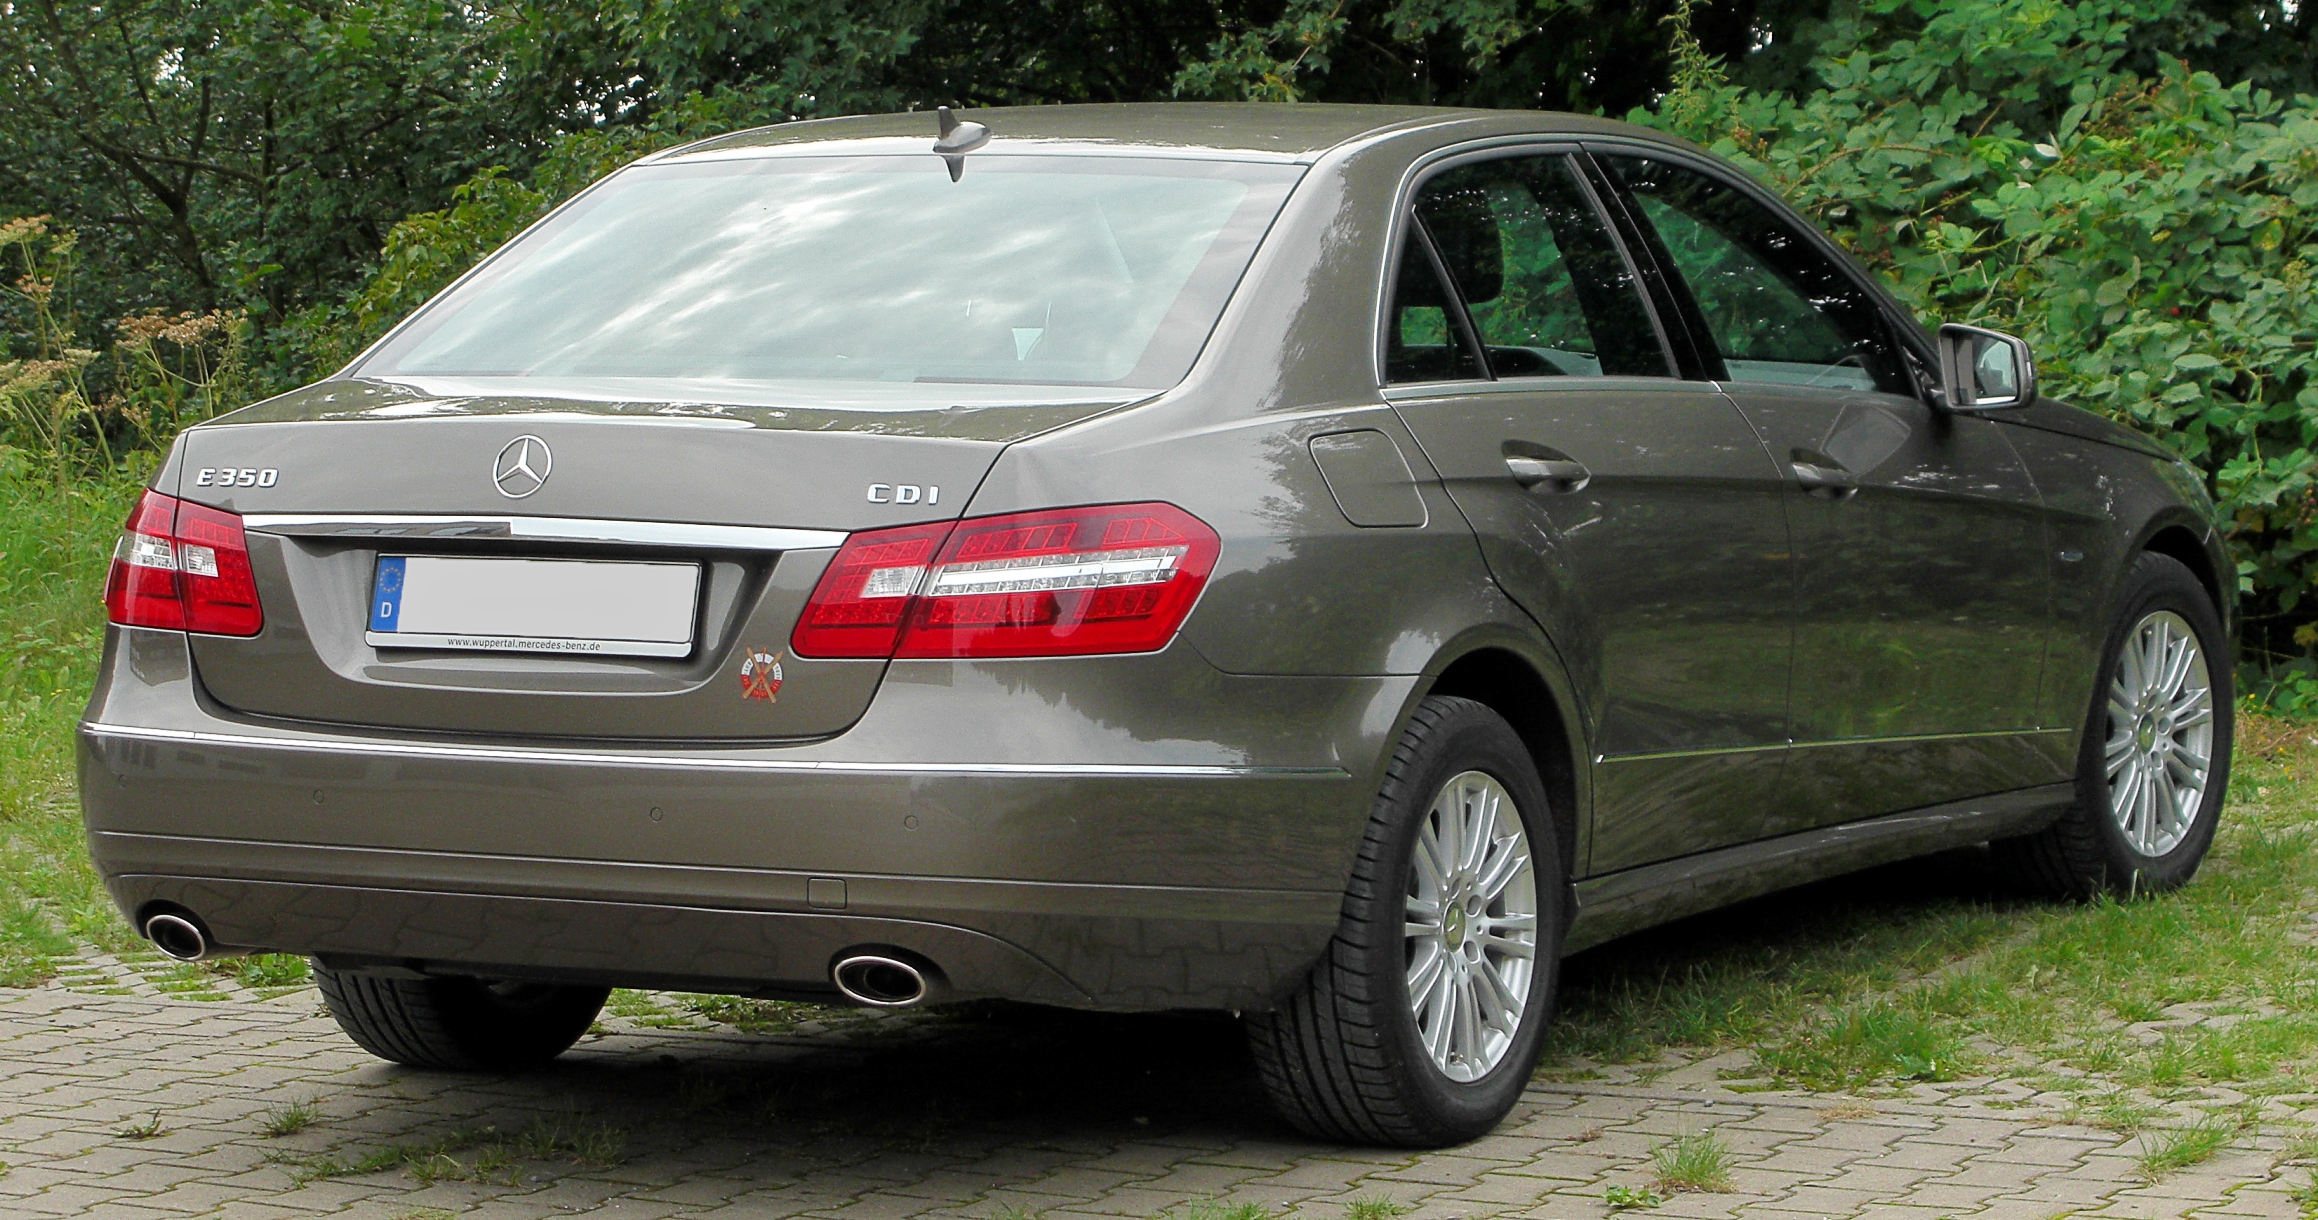 Dateimercedes E 350 Cdi Blueefficiency Elegance W212 Rear